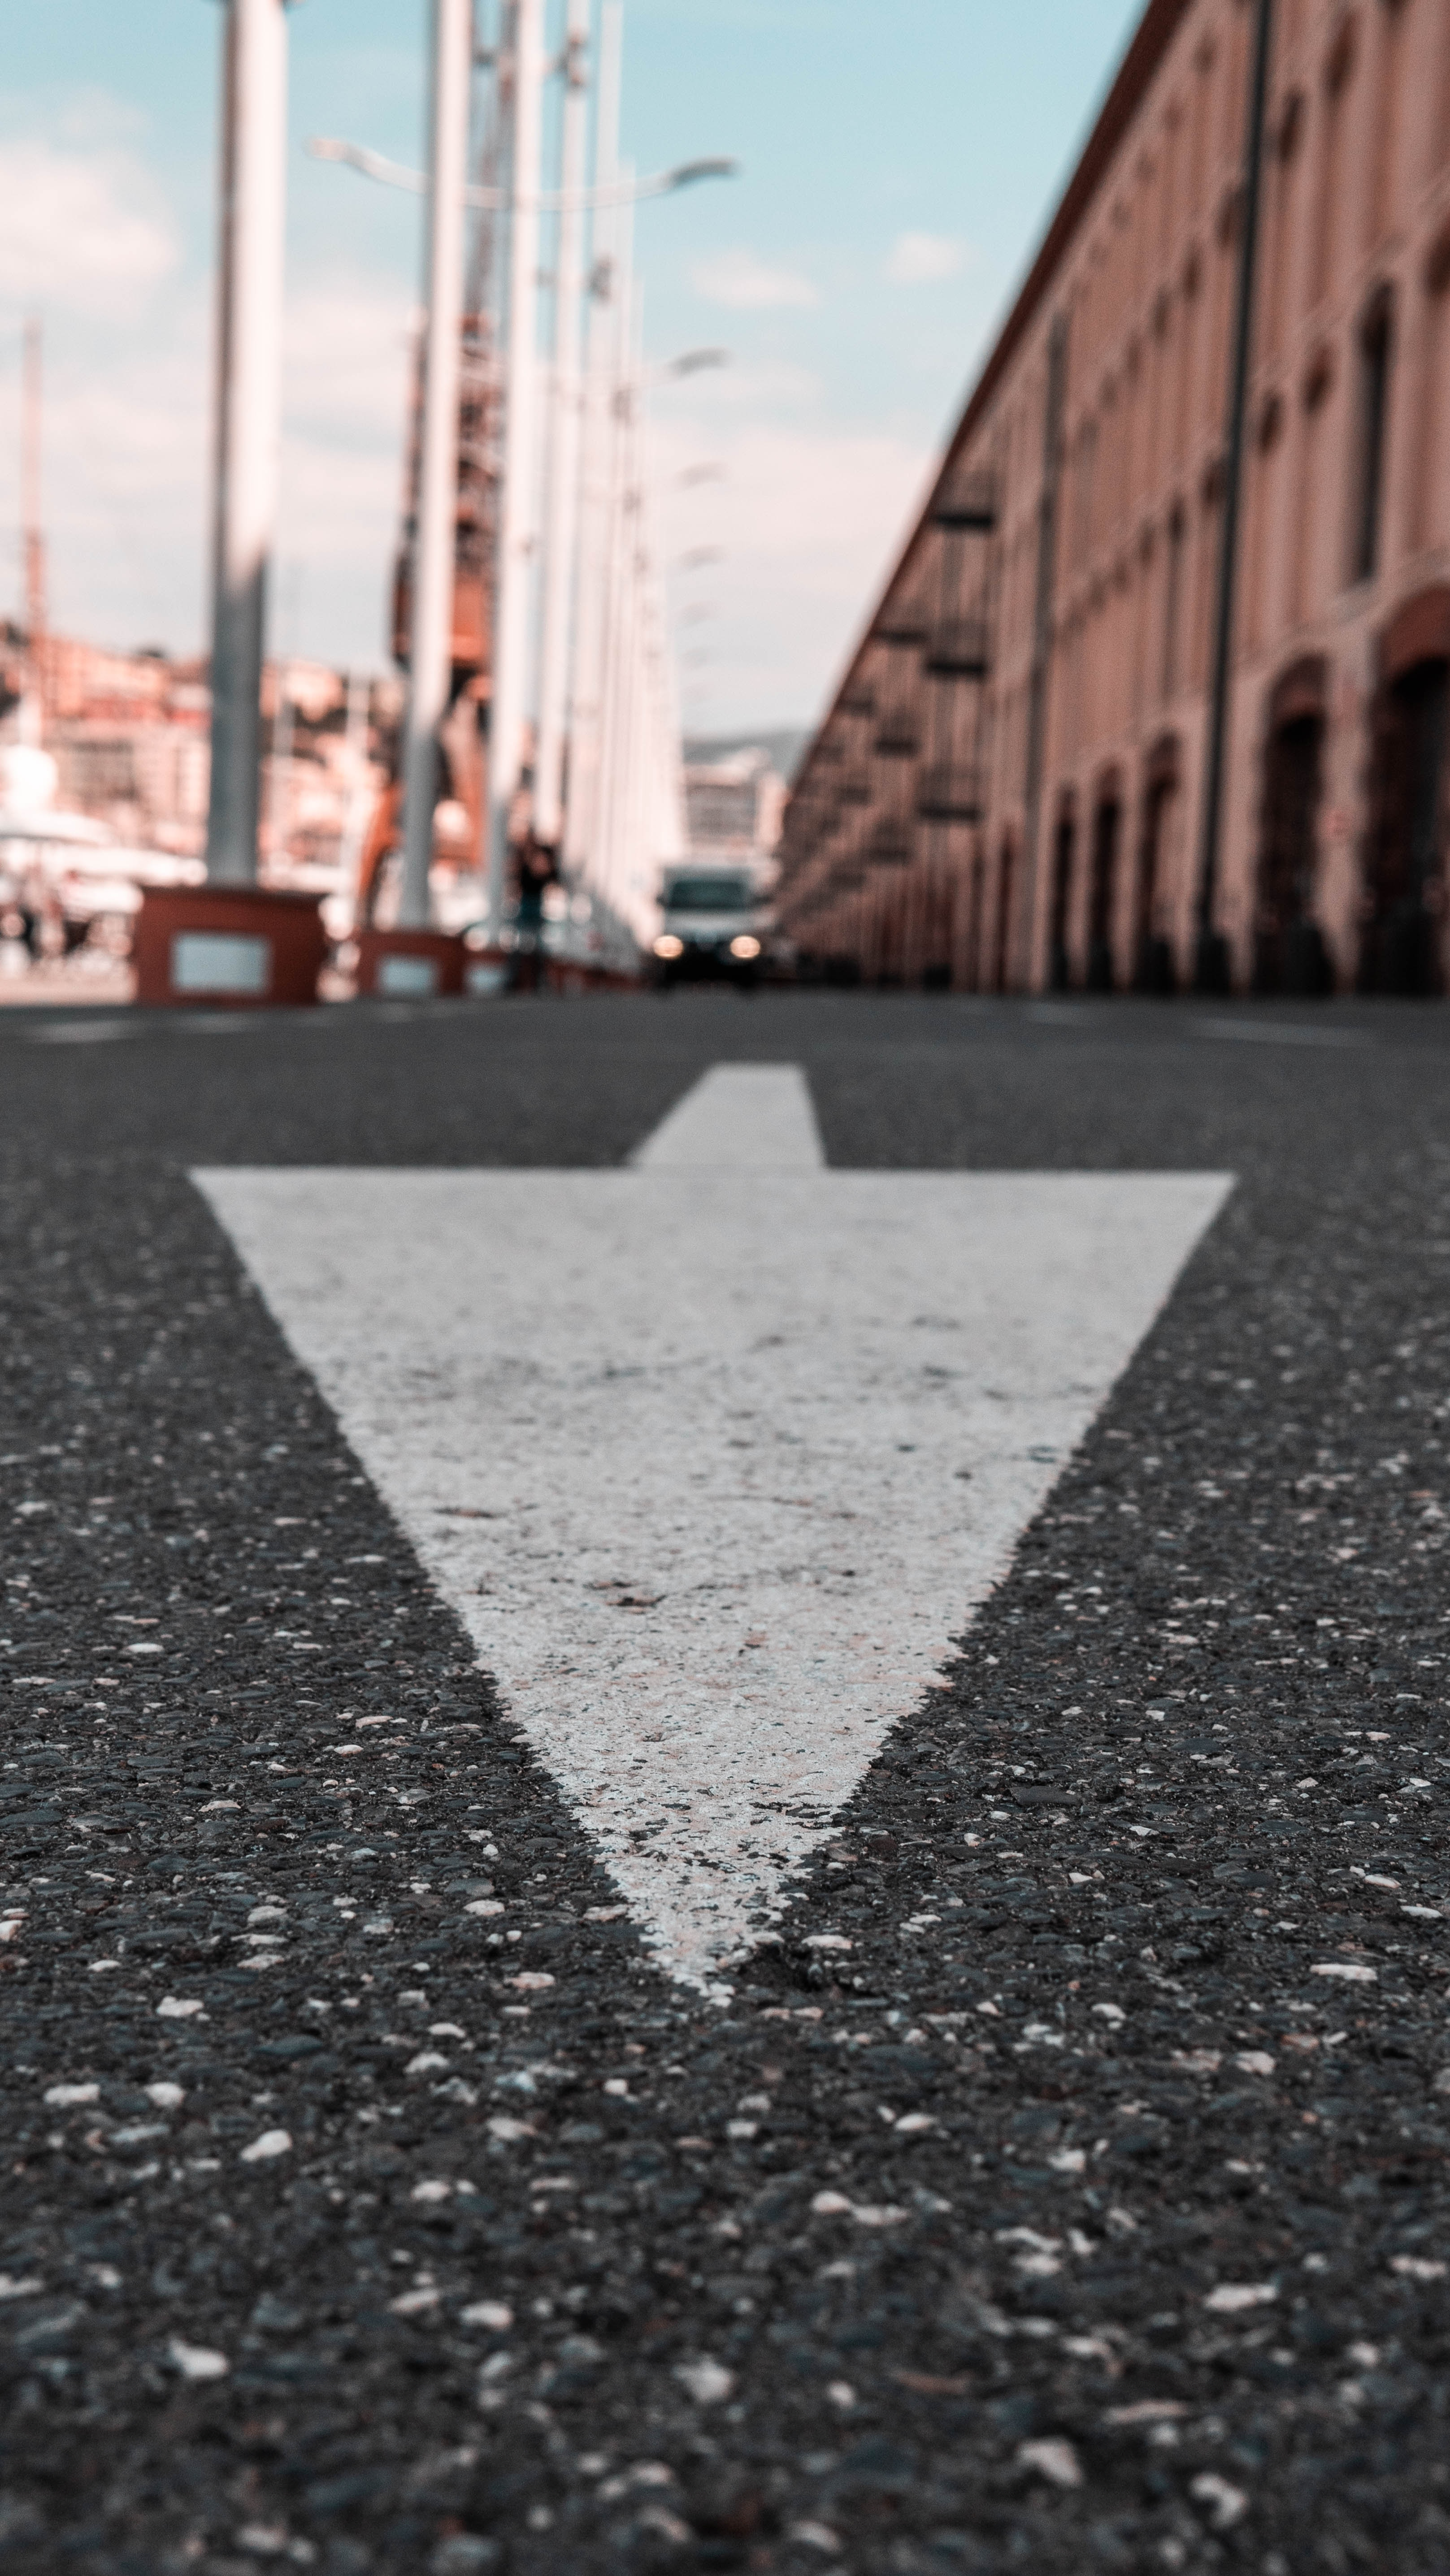 138280 download wallpaper Miscellanea, Miscellaneous, Asphalt, Markup, Arrow, Direction, Road screensavers and pictures for free